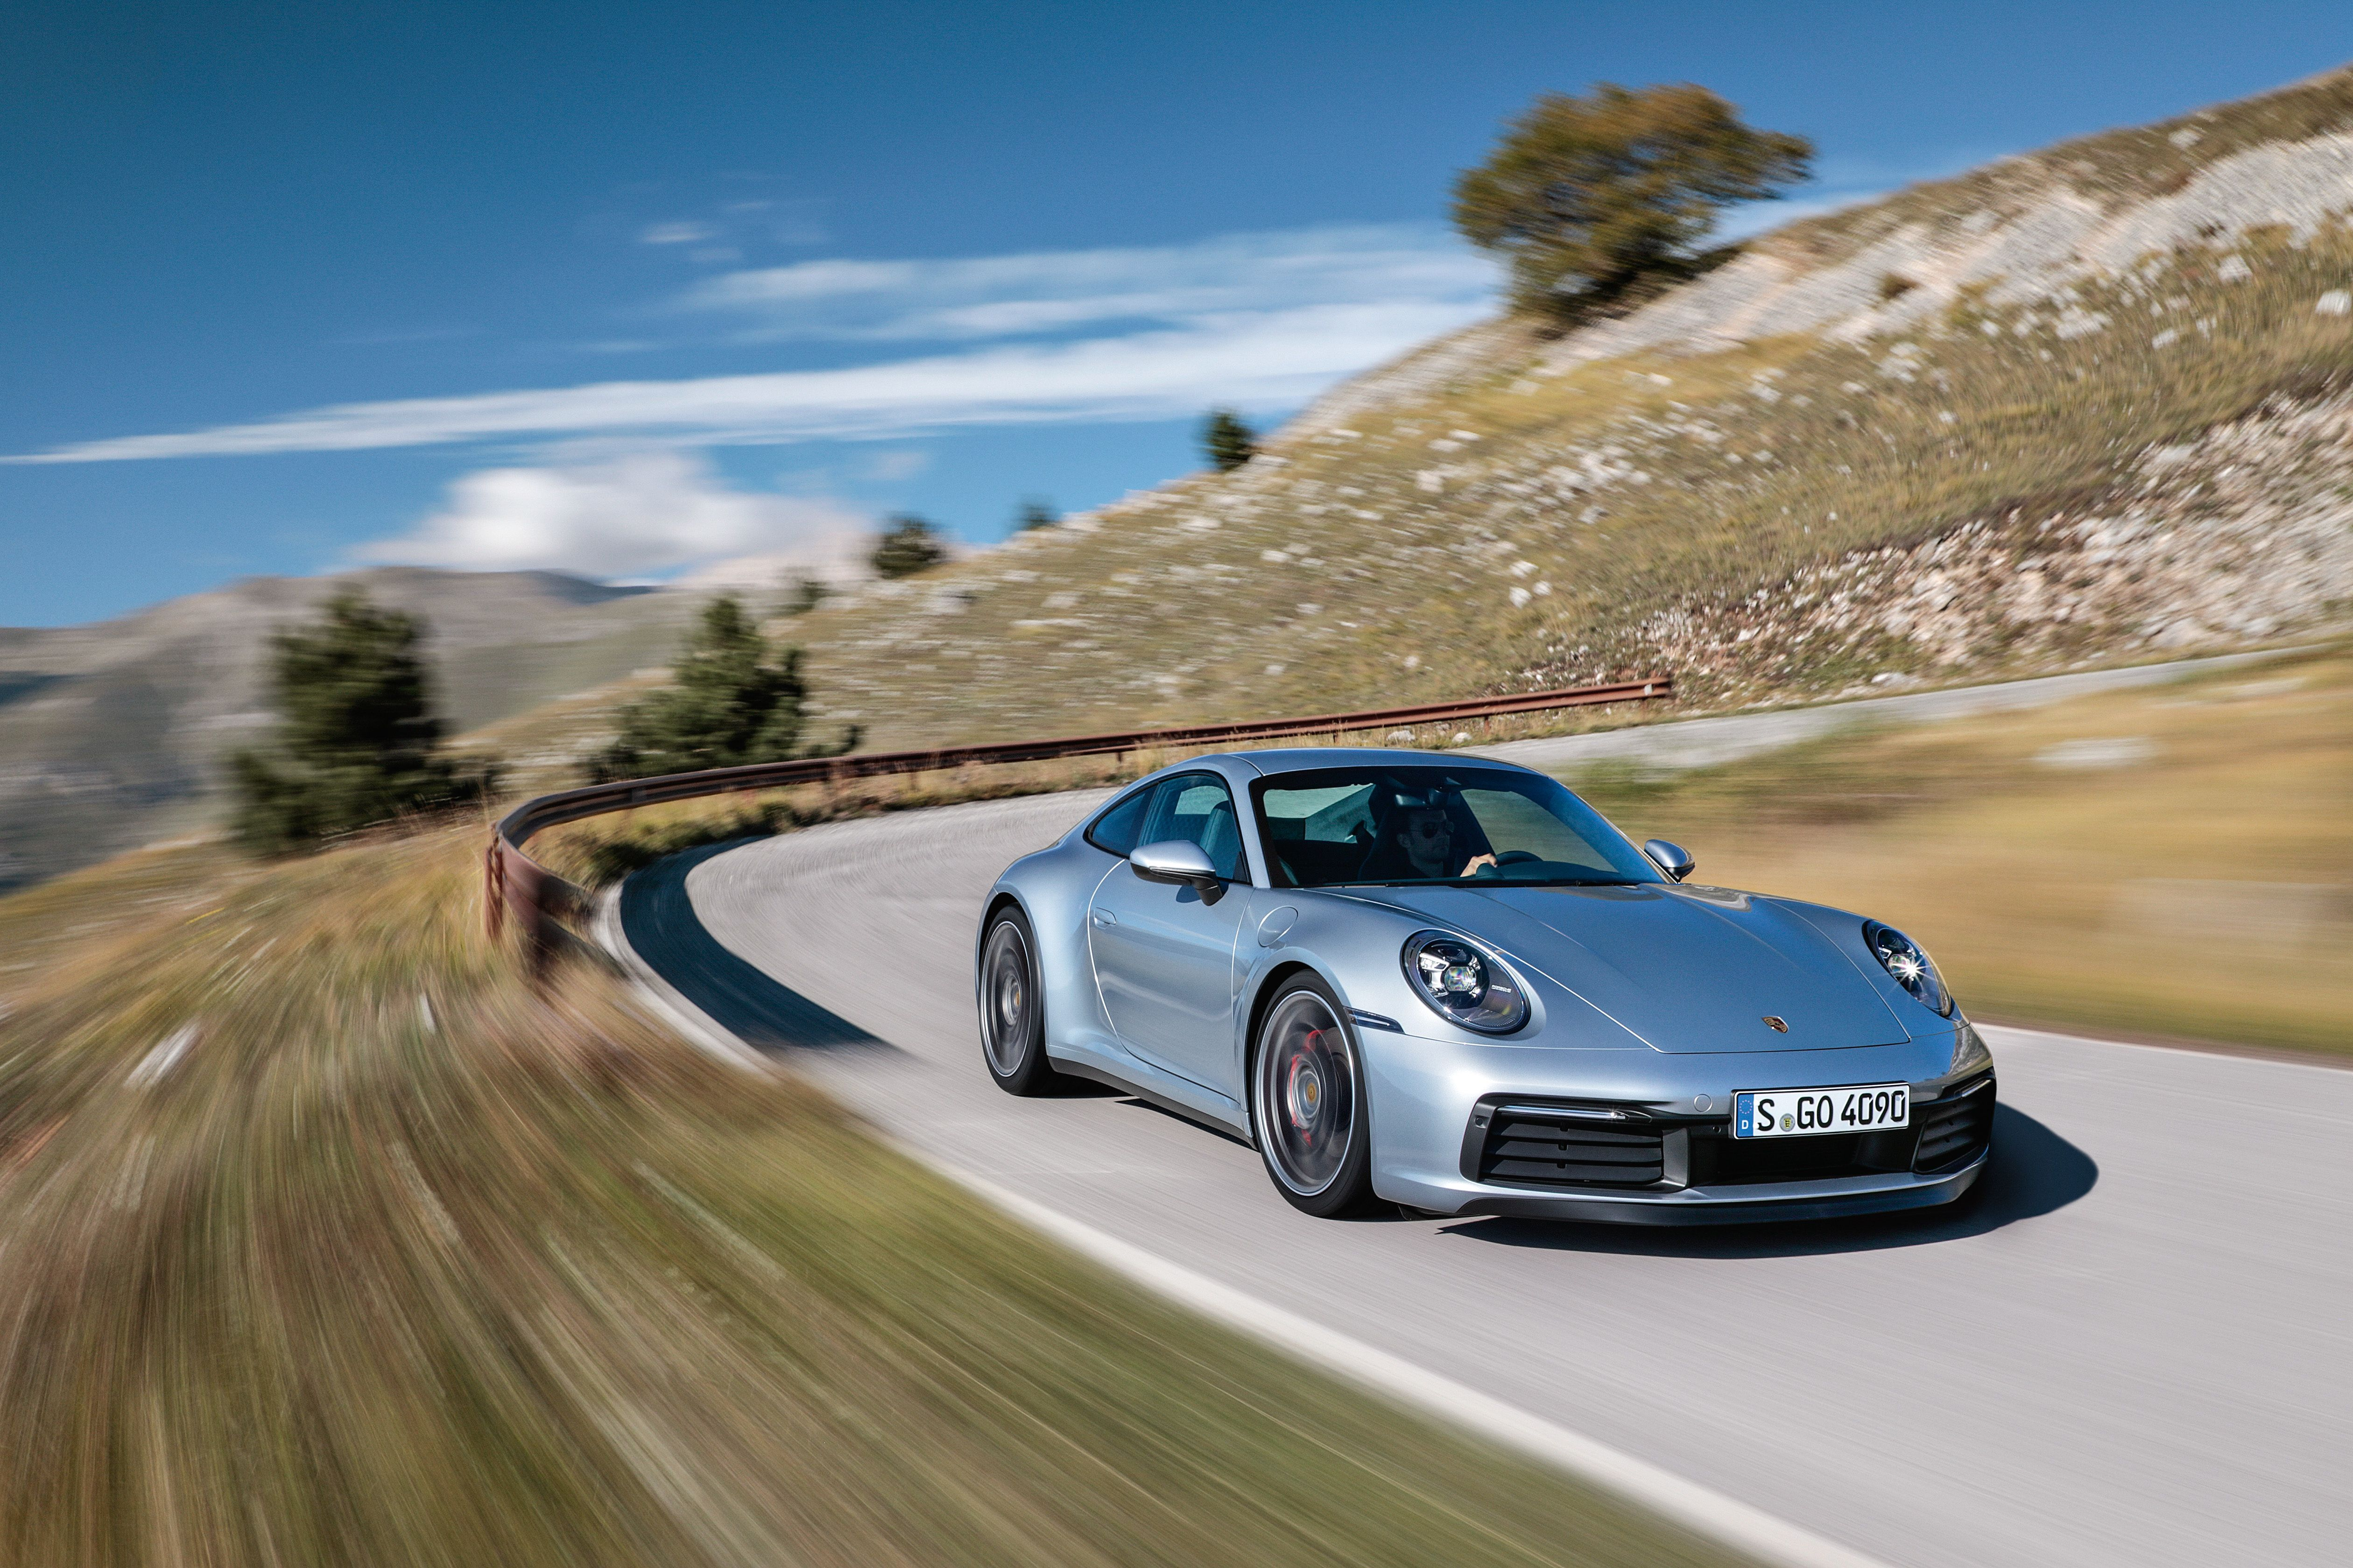 2020 Porsche 911 Review, Pricing, and Specs